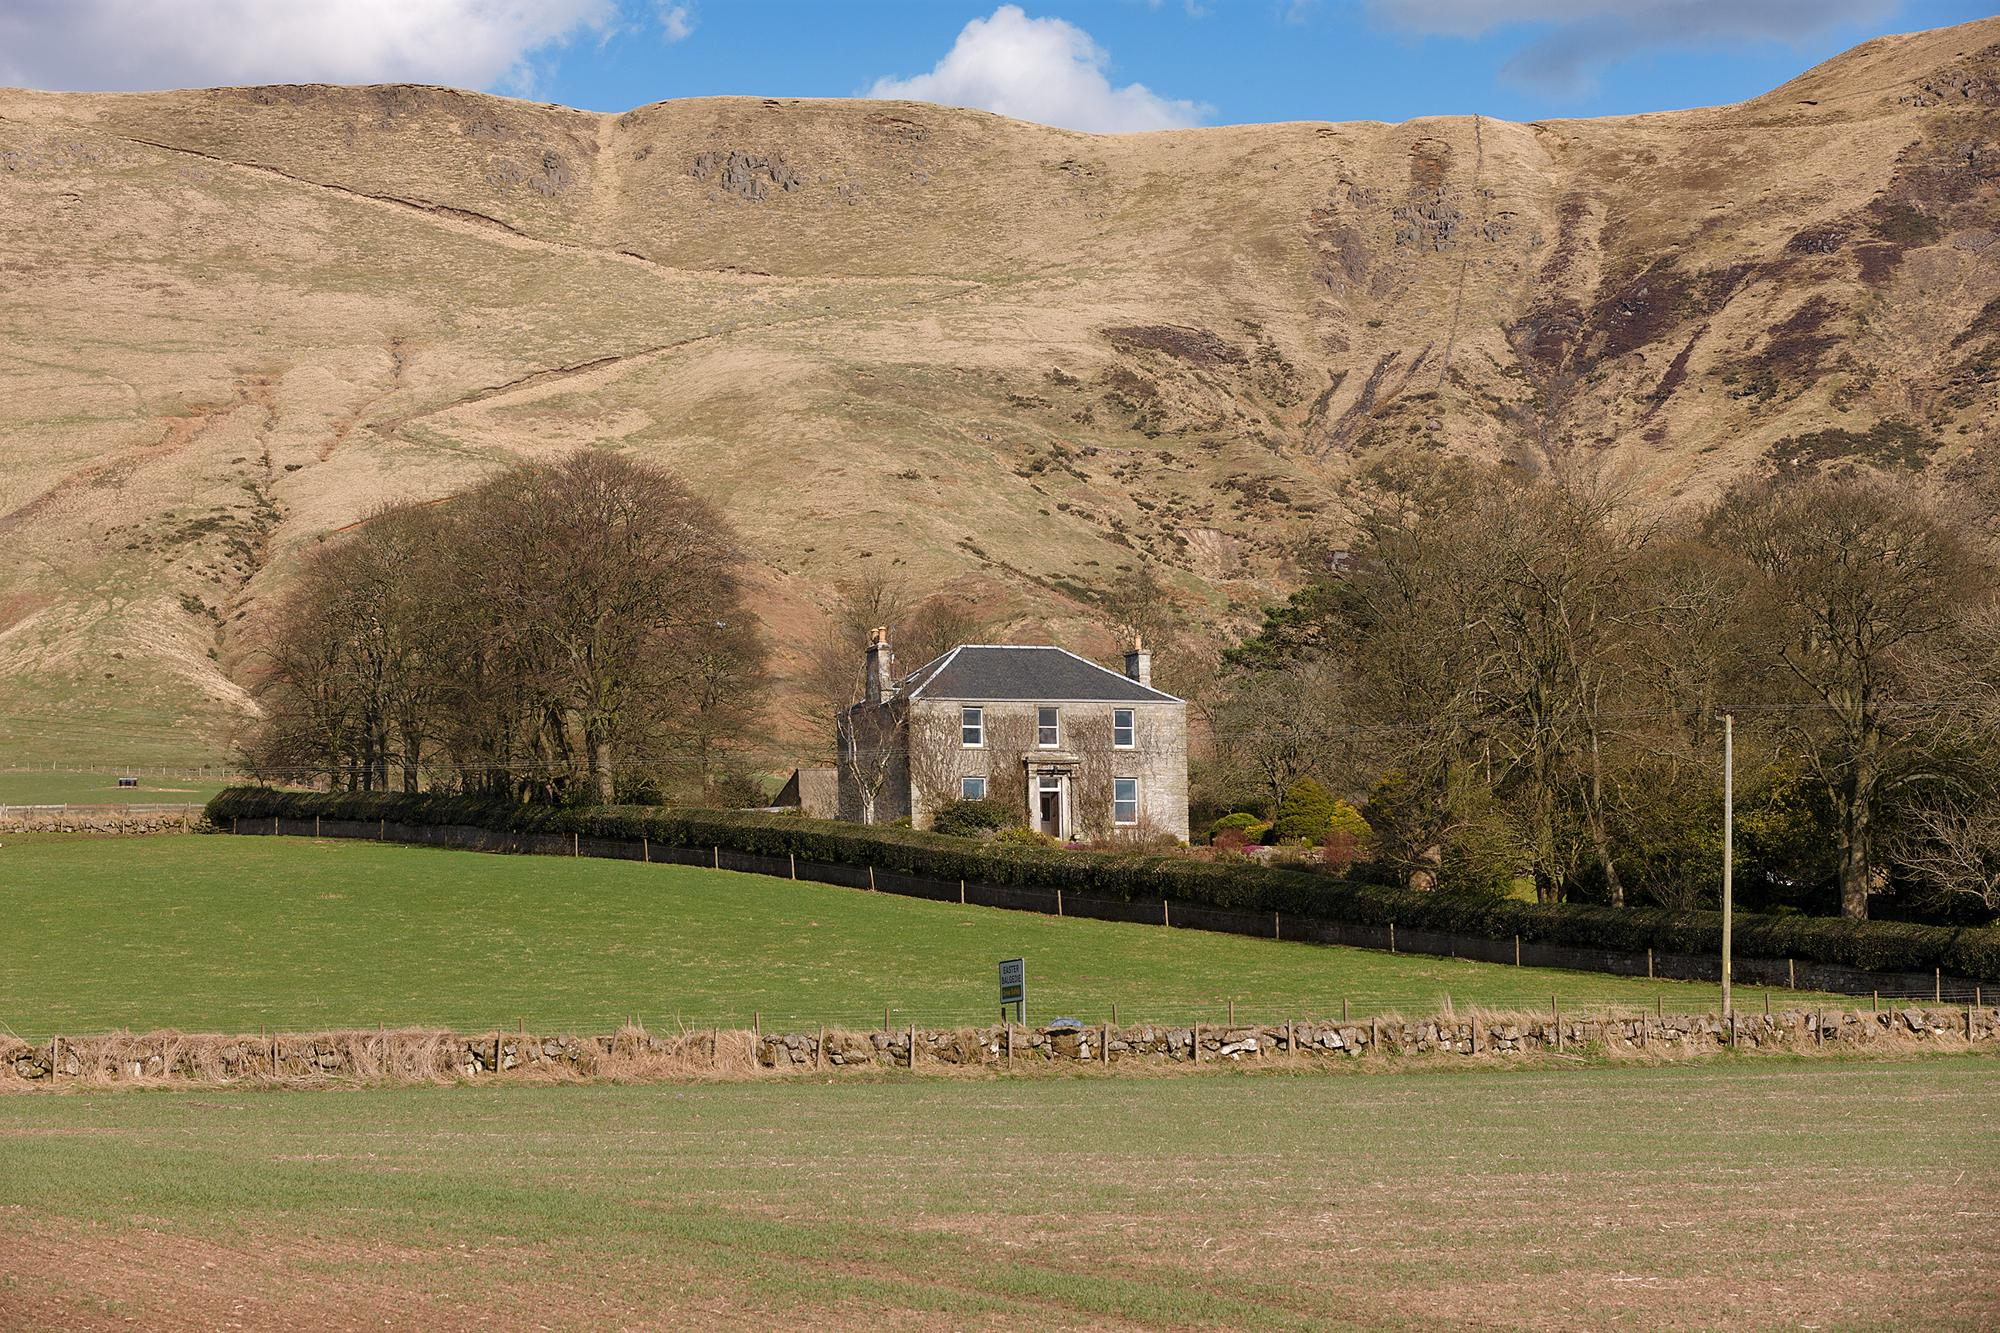 Hotels, Cottages, B&Bs & Glamping in Perthshire